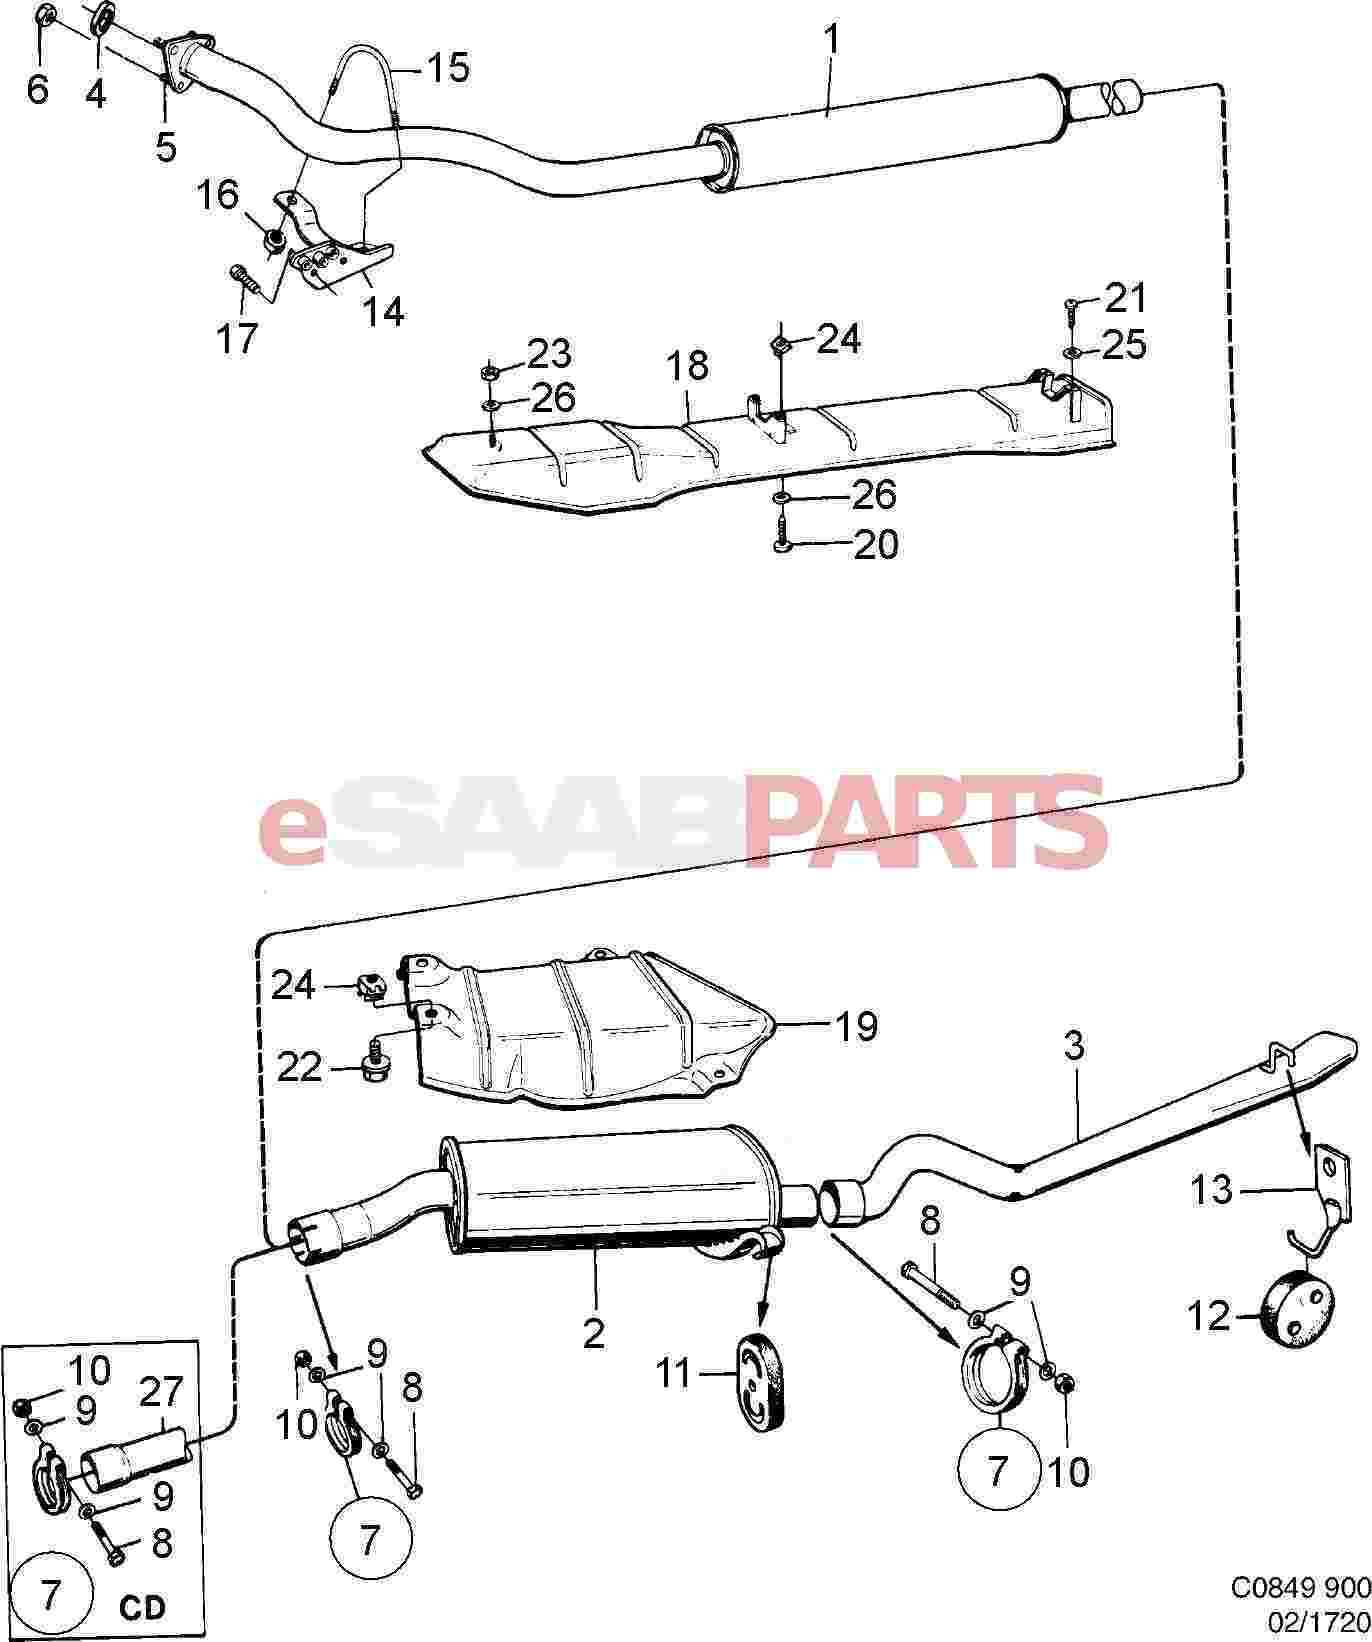 Fwd Saab 99 Engine Diagram. Saab. Auto Wiring Diagram